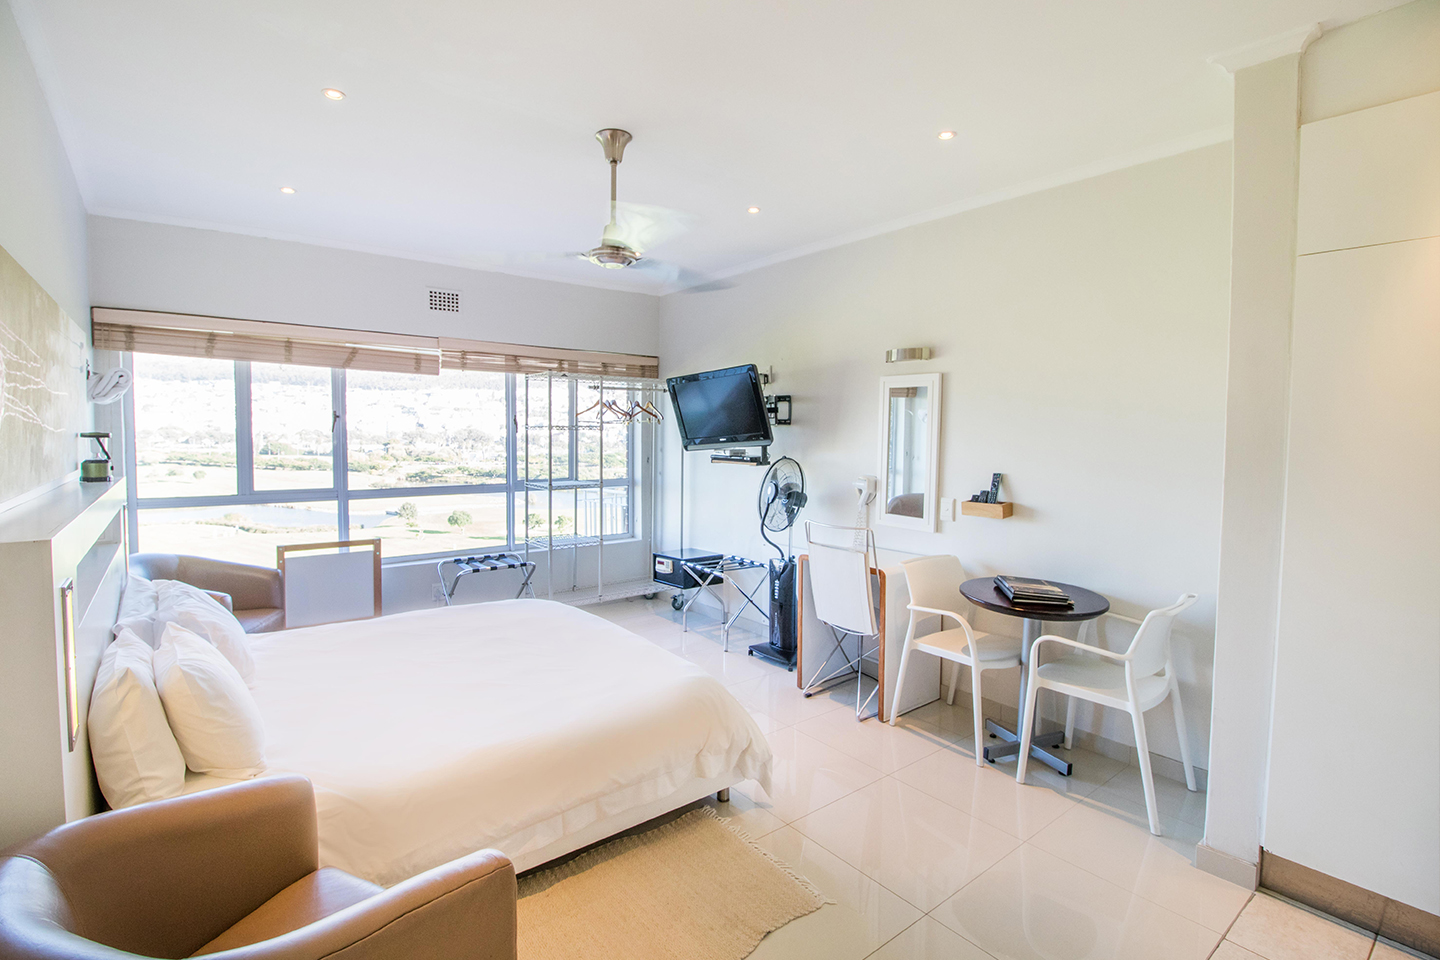 Bedroom 1 at Mouille Point Village - Citybase Apartments